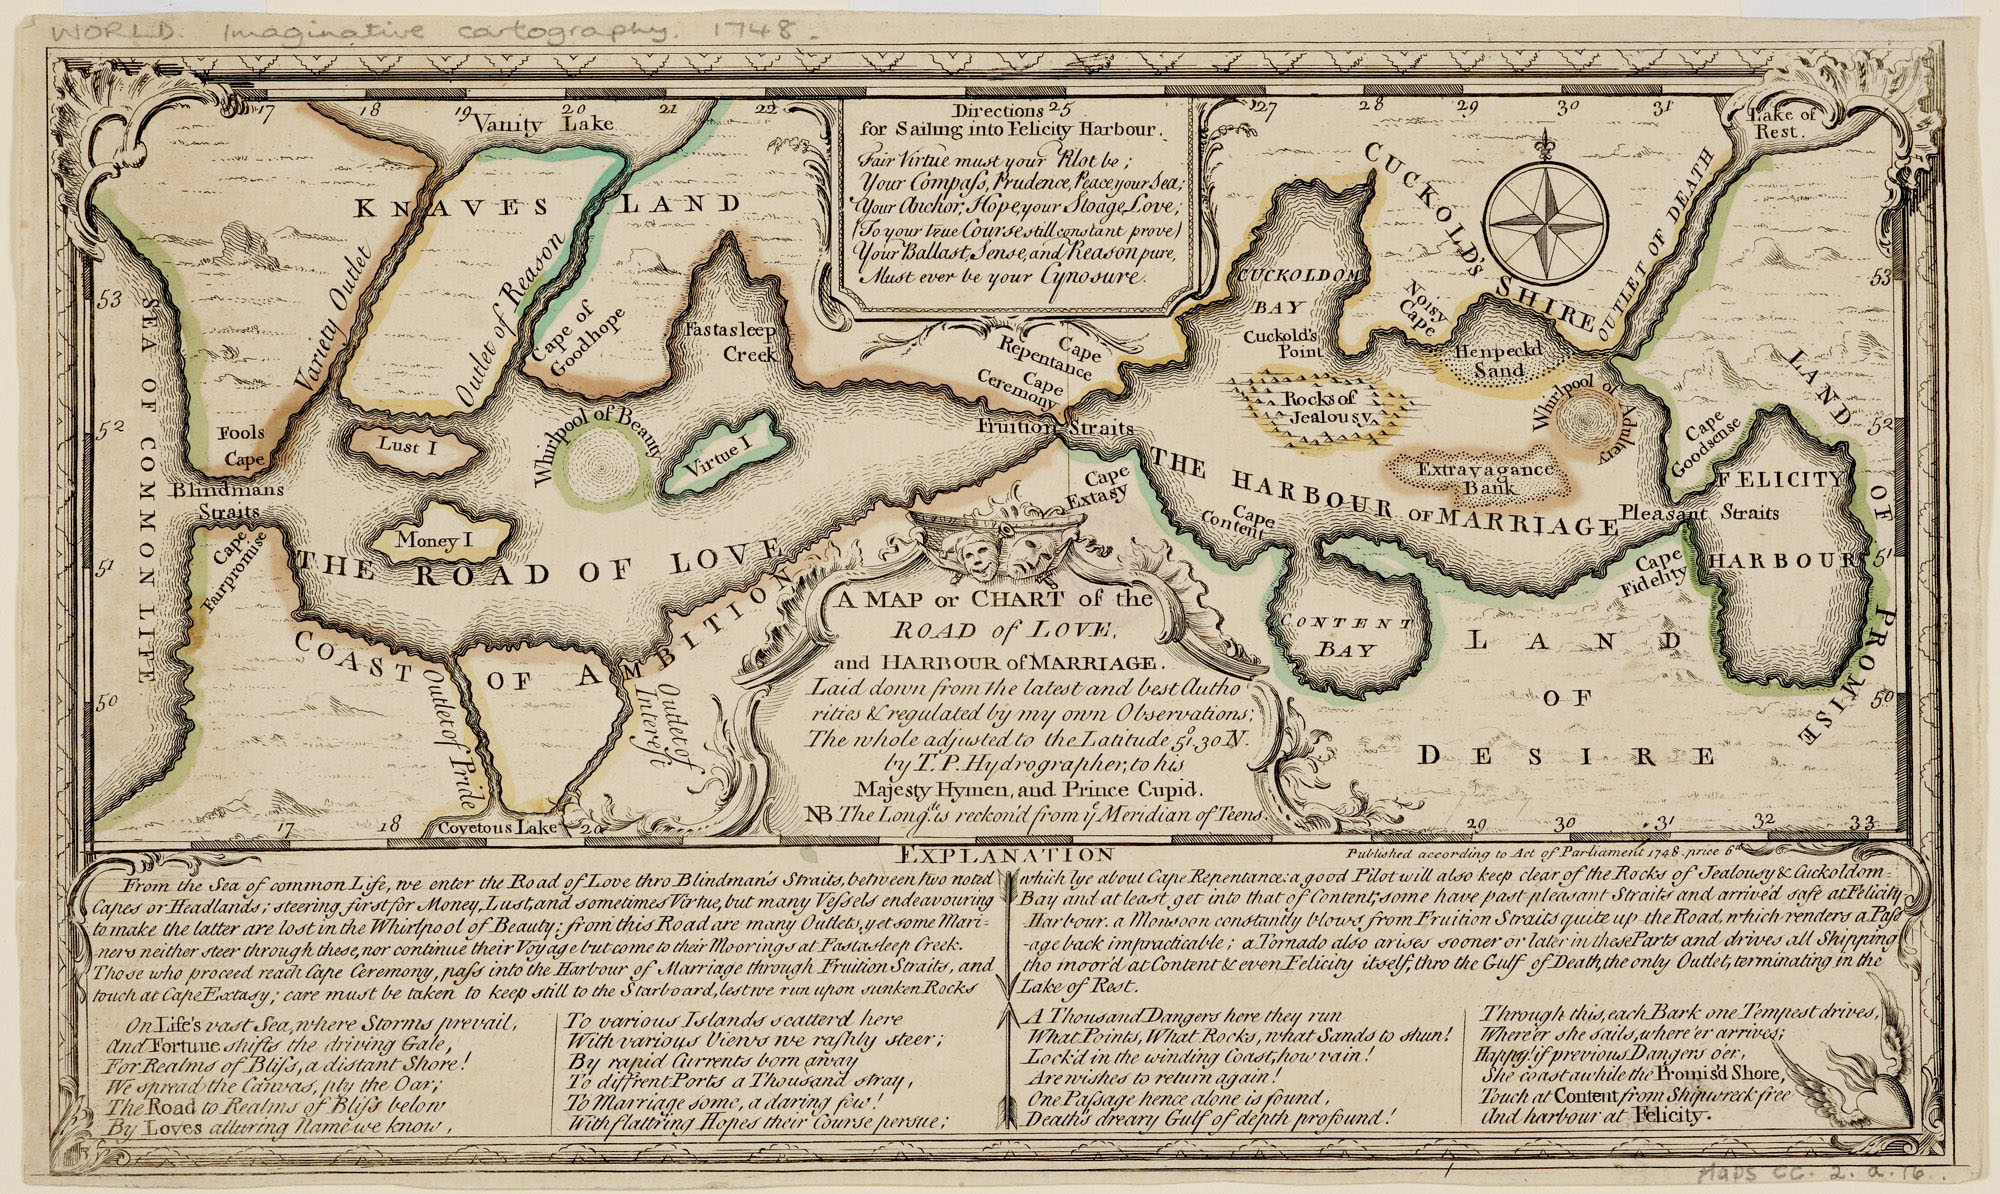 Thomas Sayer's A Map or Chart of the Road of Love, and Harbour of Marriage, 1748 — Source.